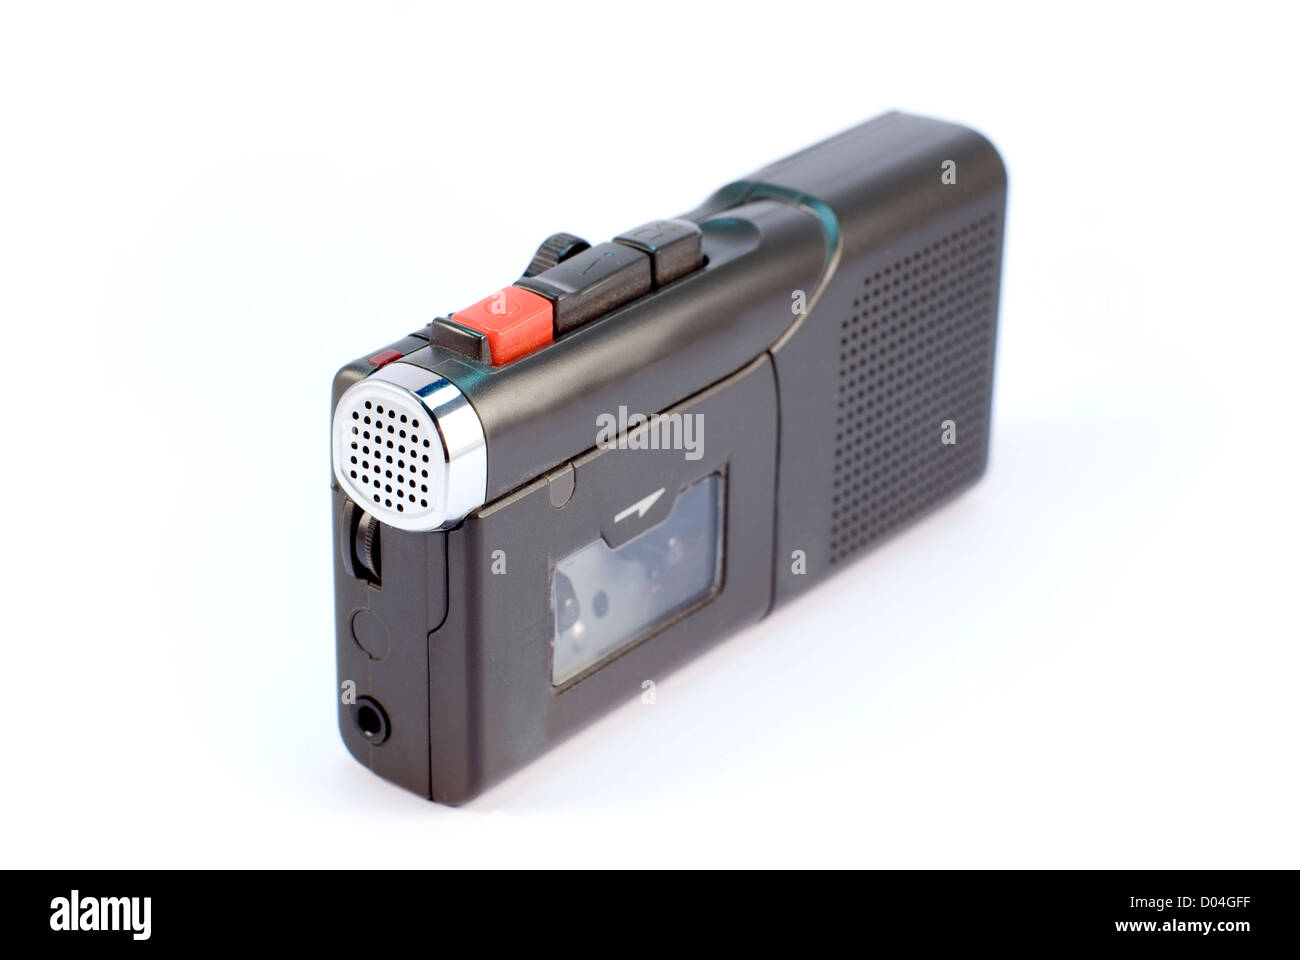 dictaphone on white backgrounds - Stock Image